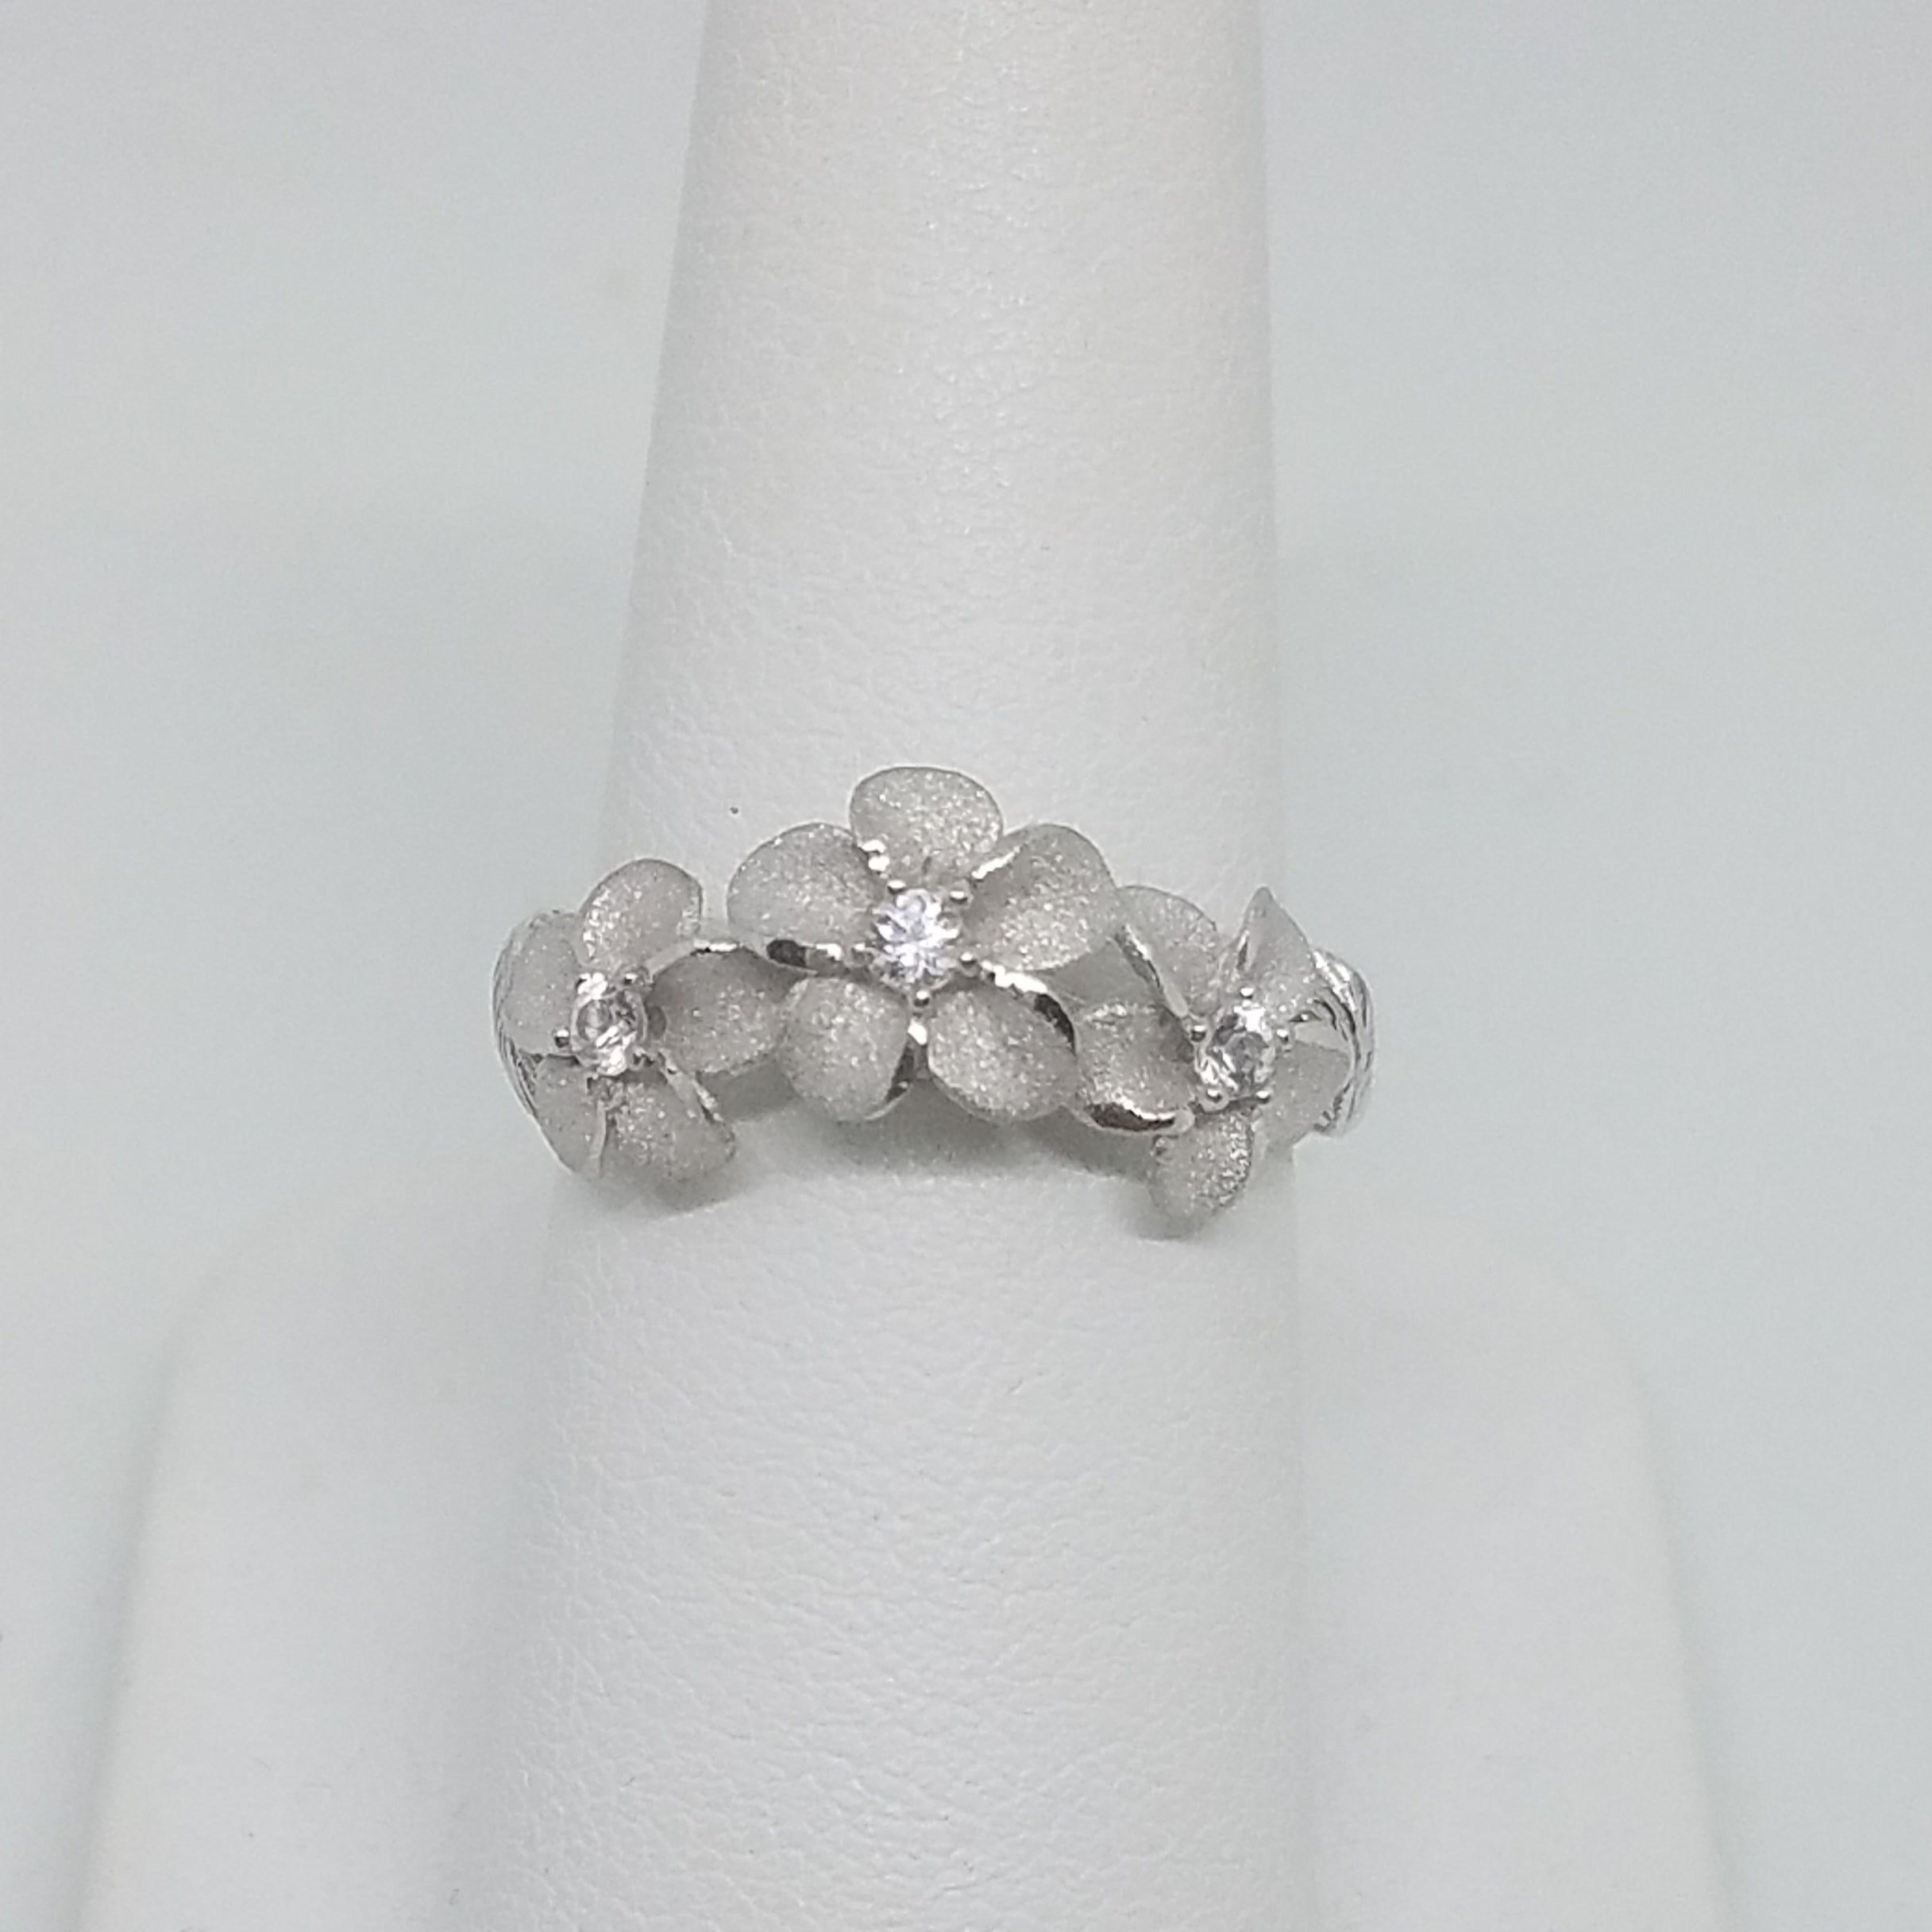 Silver Plumeria with Leaves Ring